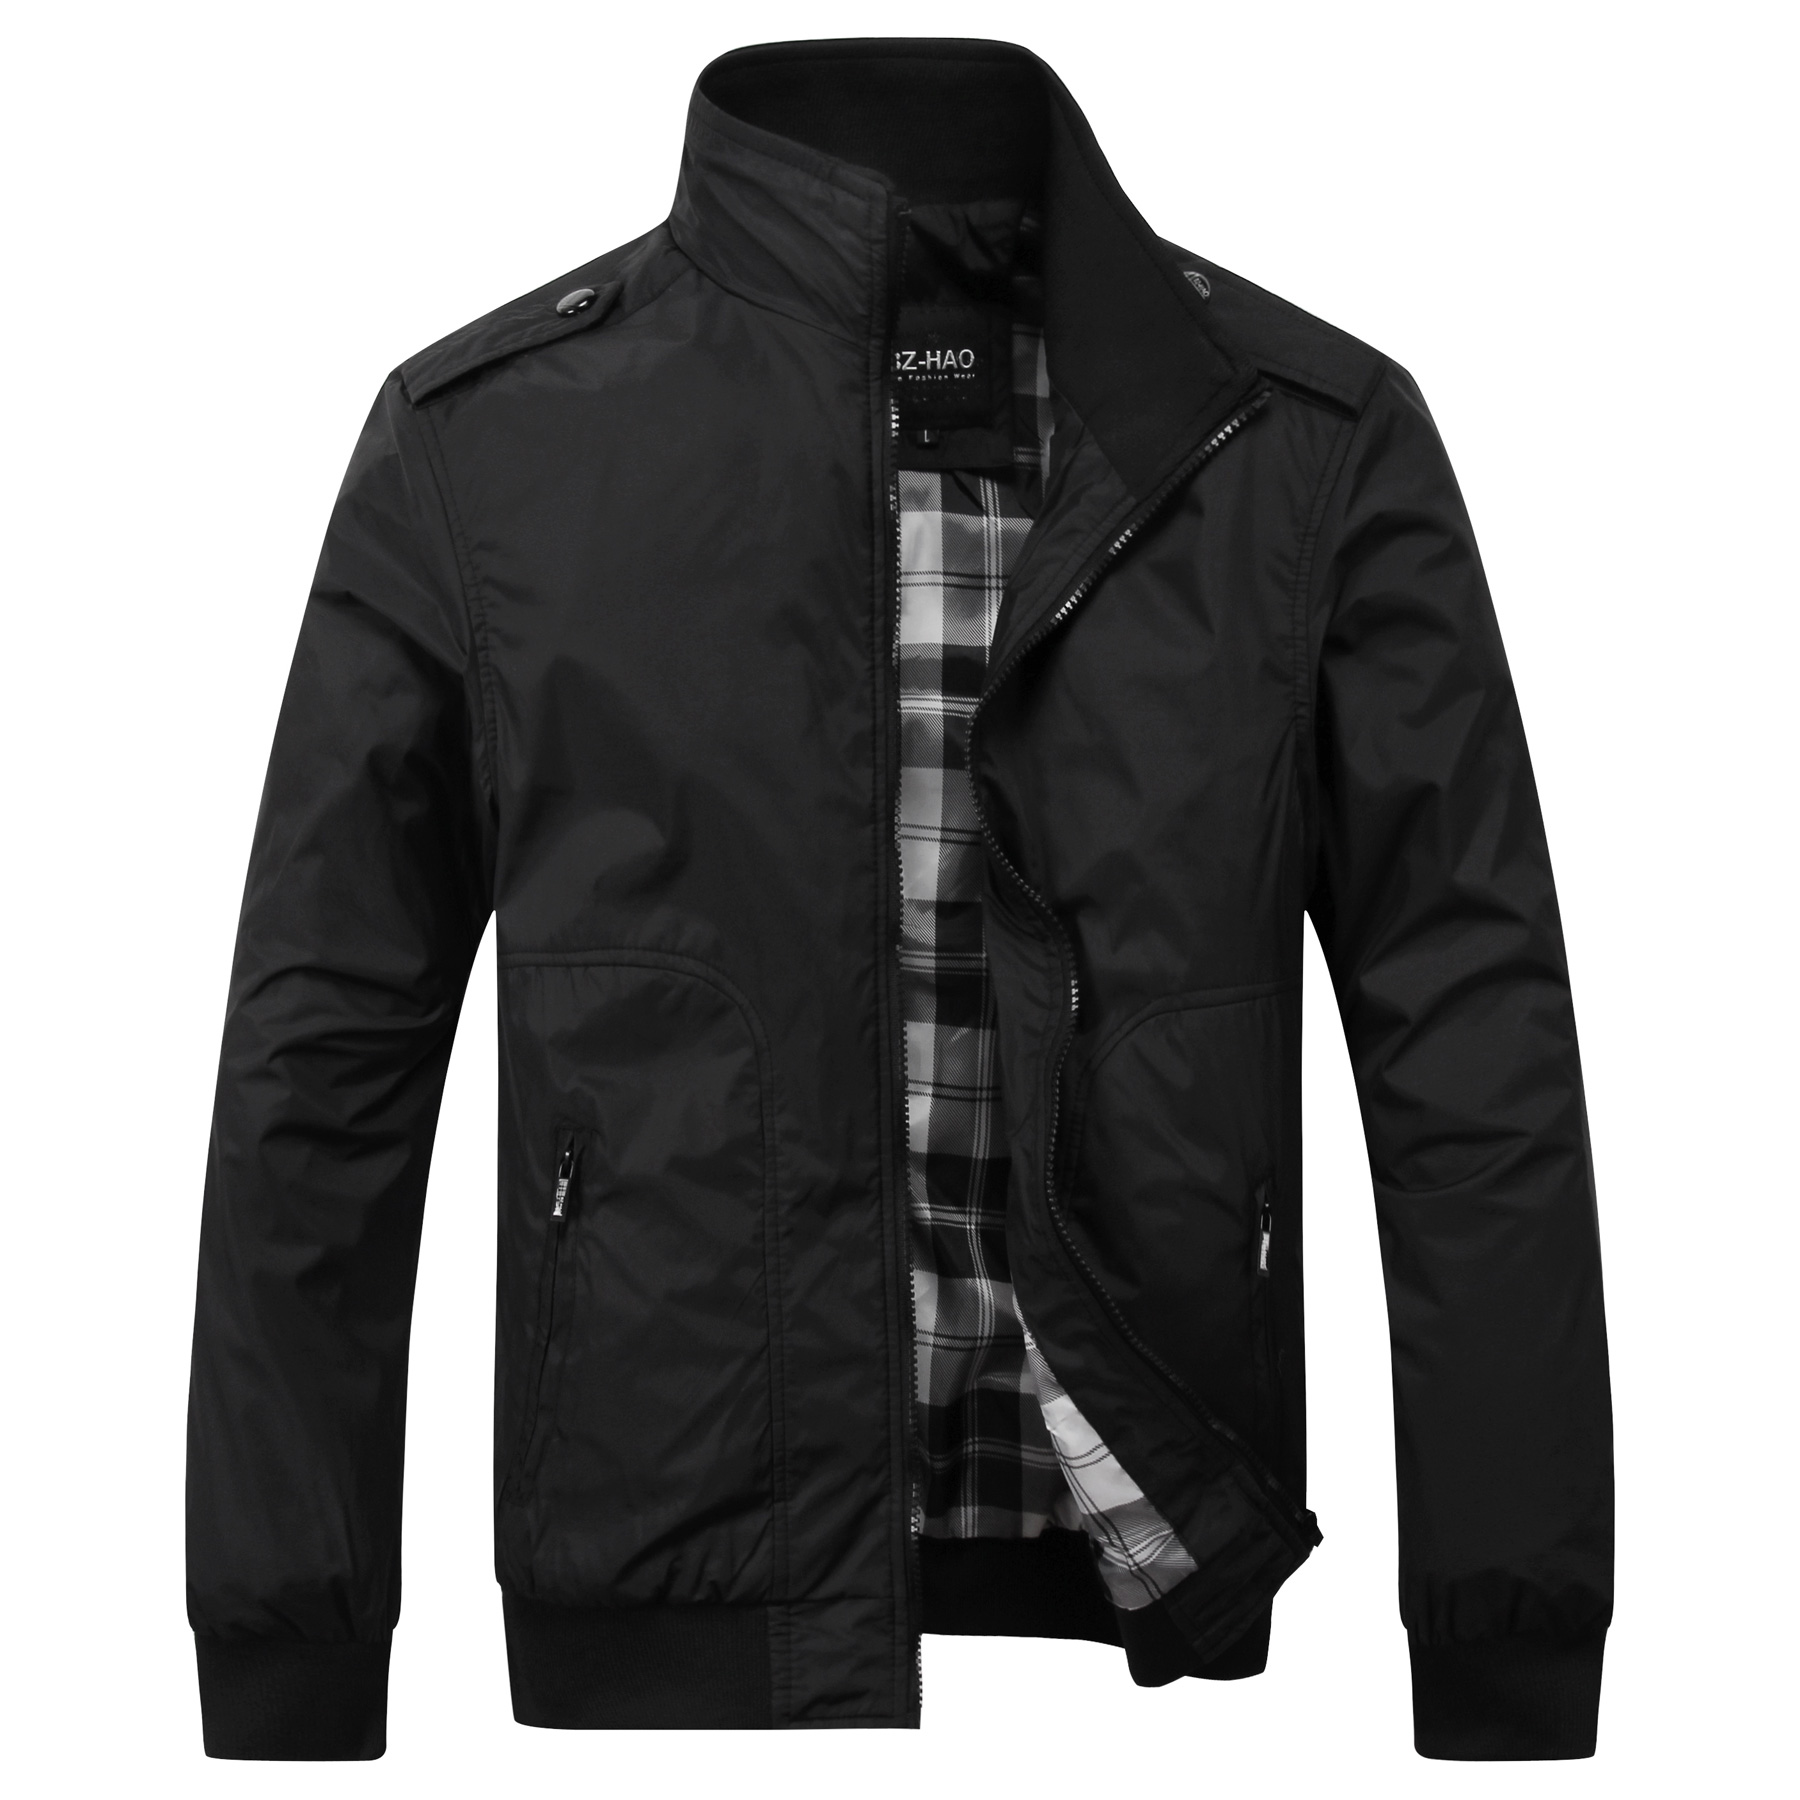 Mens Black Casual Jacket - Jacket To